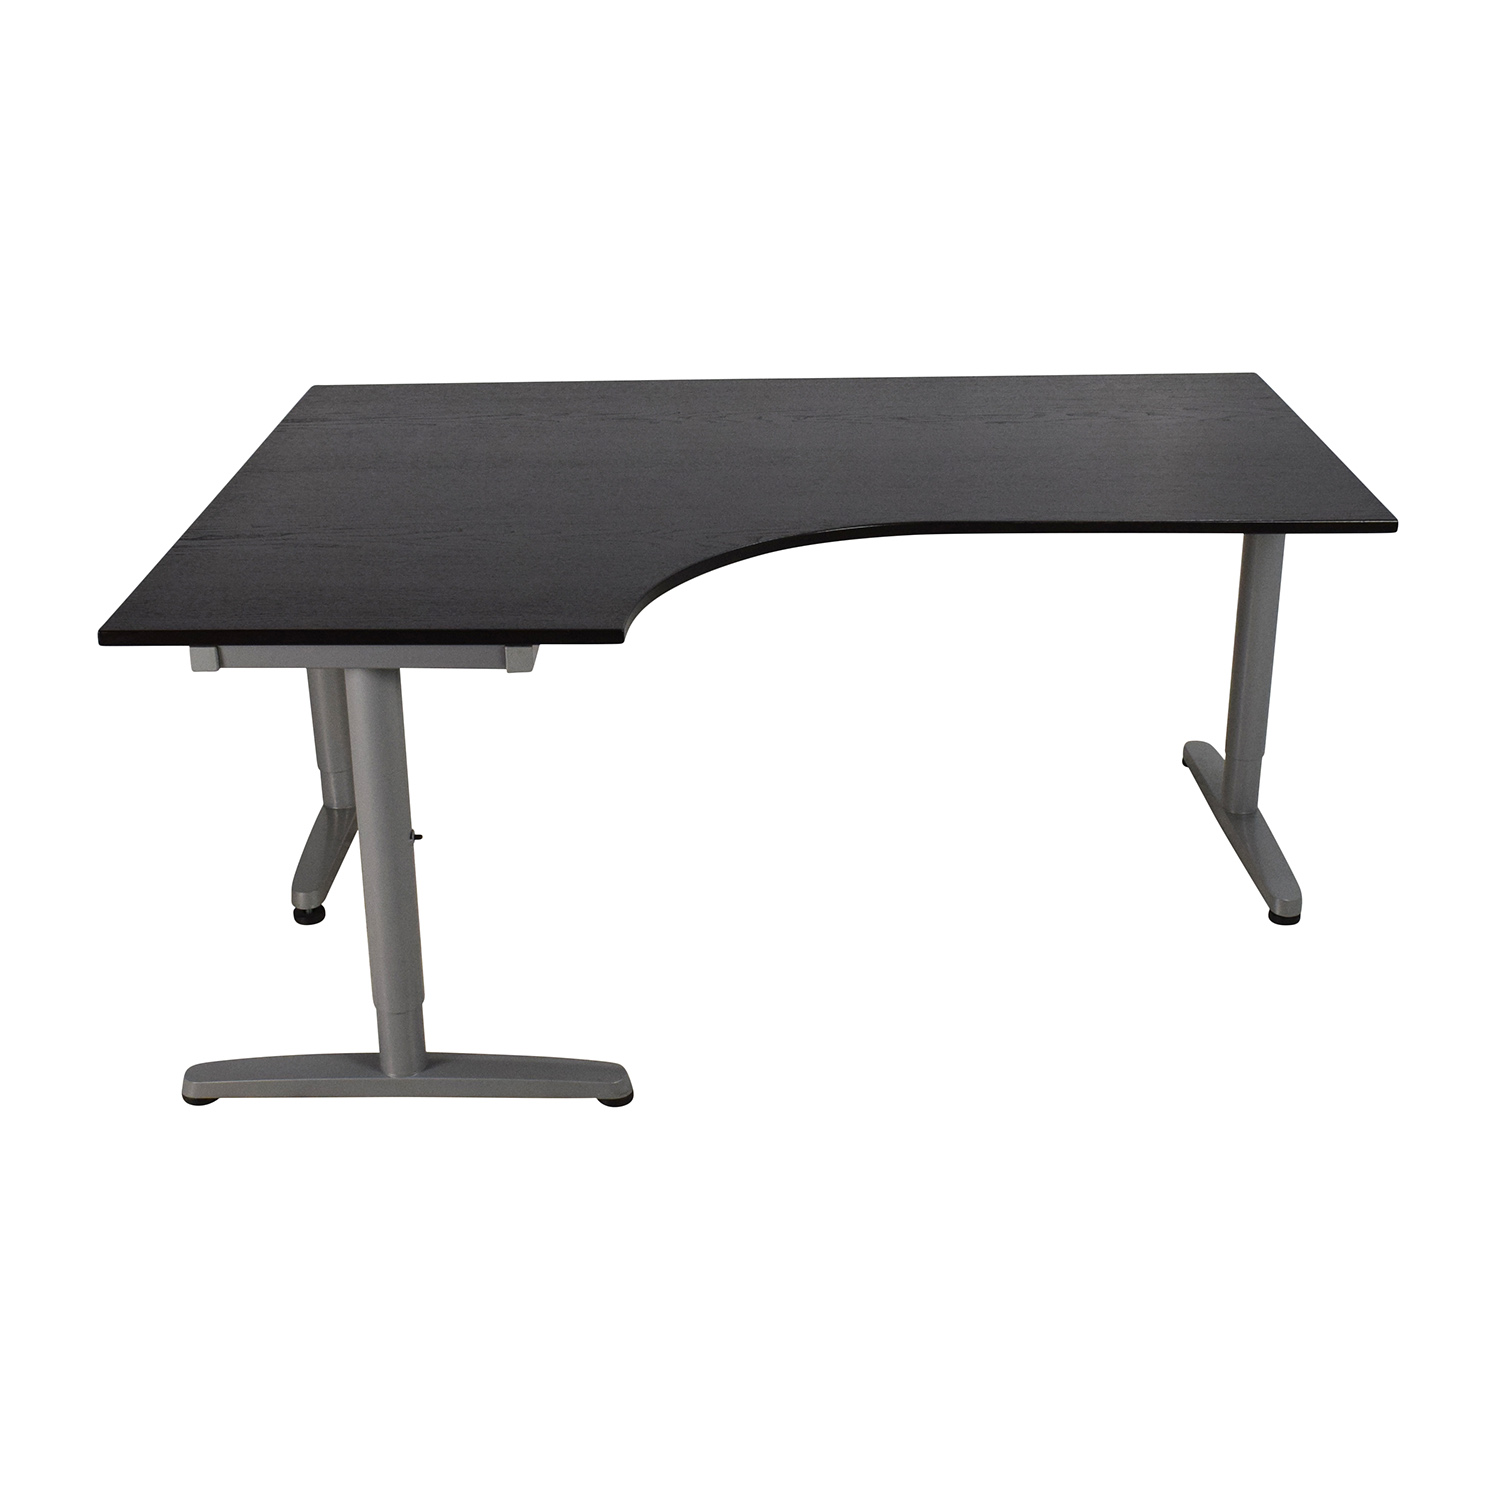 ikea home office desk. Buy IKEA Galant Corner Desk Online Ikea Home Office